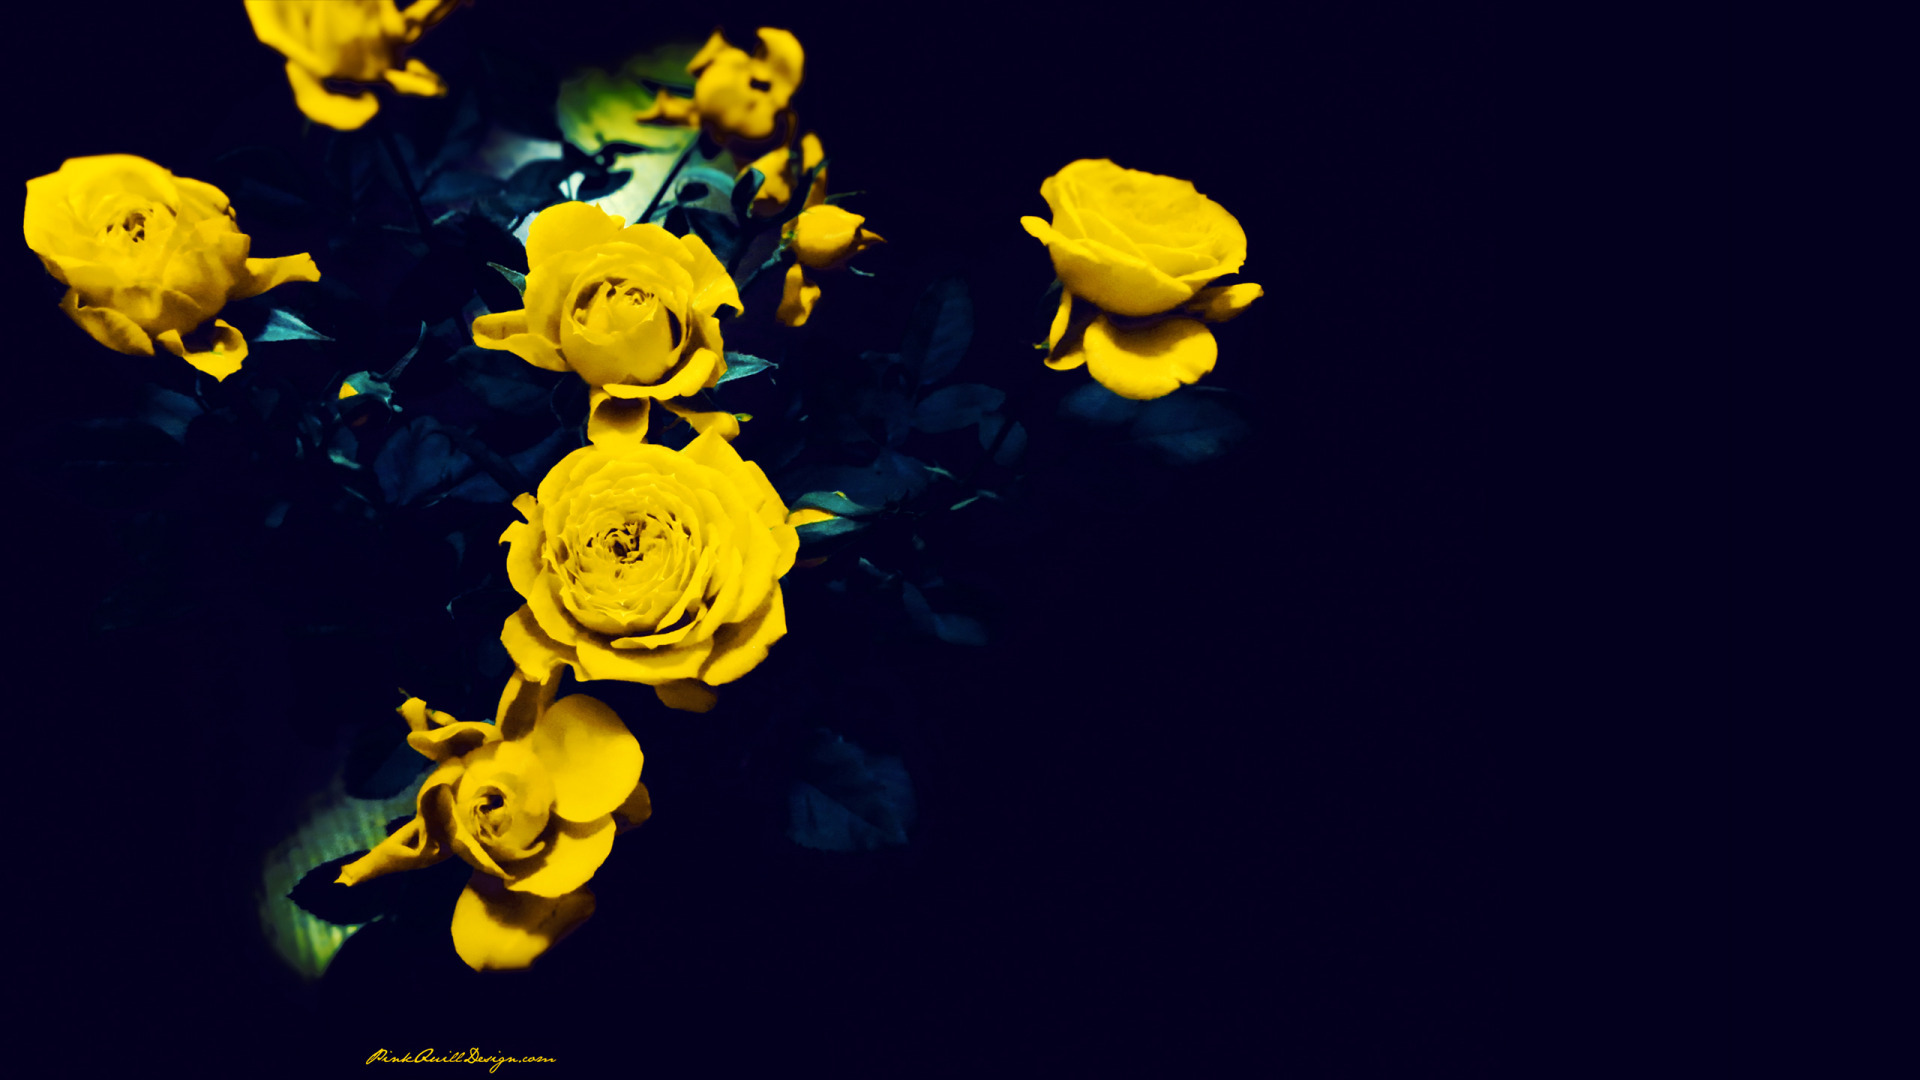 Blue And Yellow Rose Wallpaper 19 High Resolution